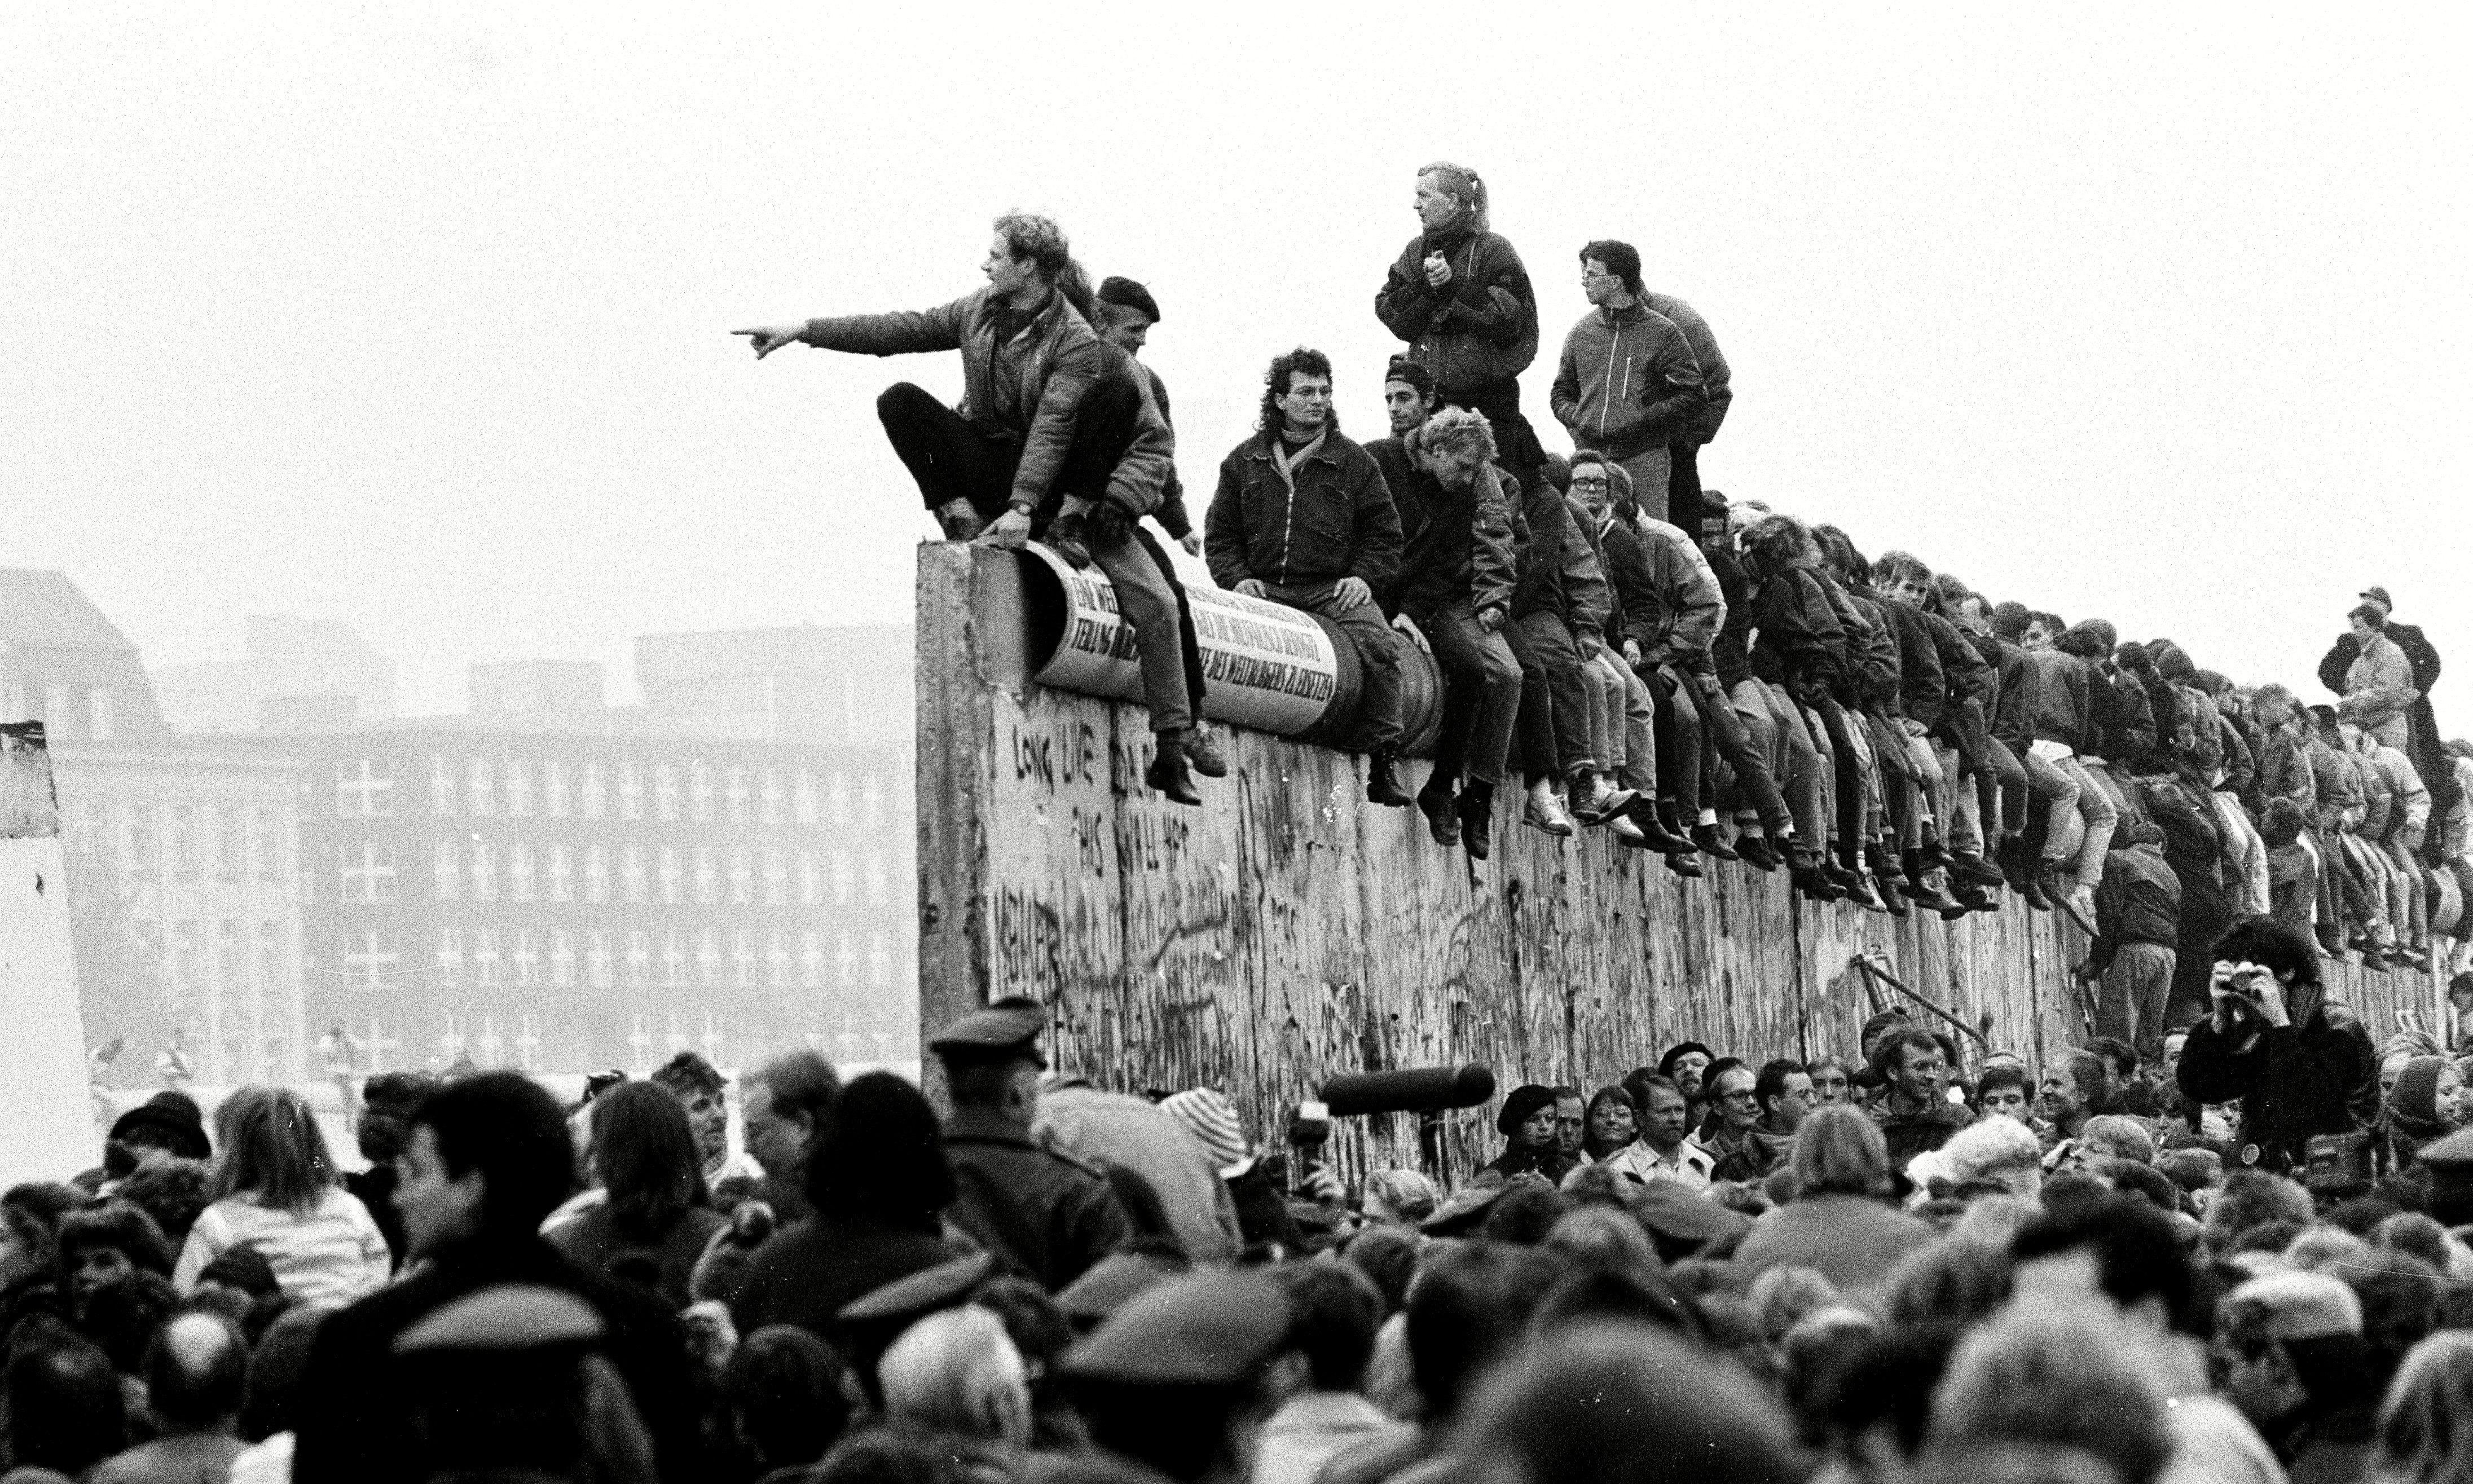 Watching the fall of the Berlin Wall: 'I downed almost an entire bottle of schnapps'